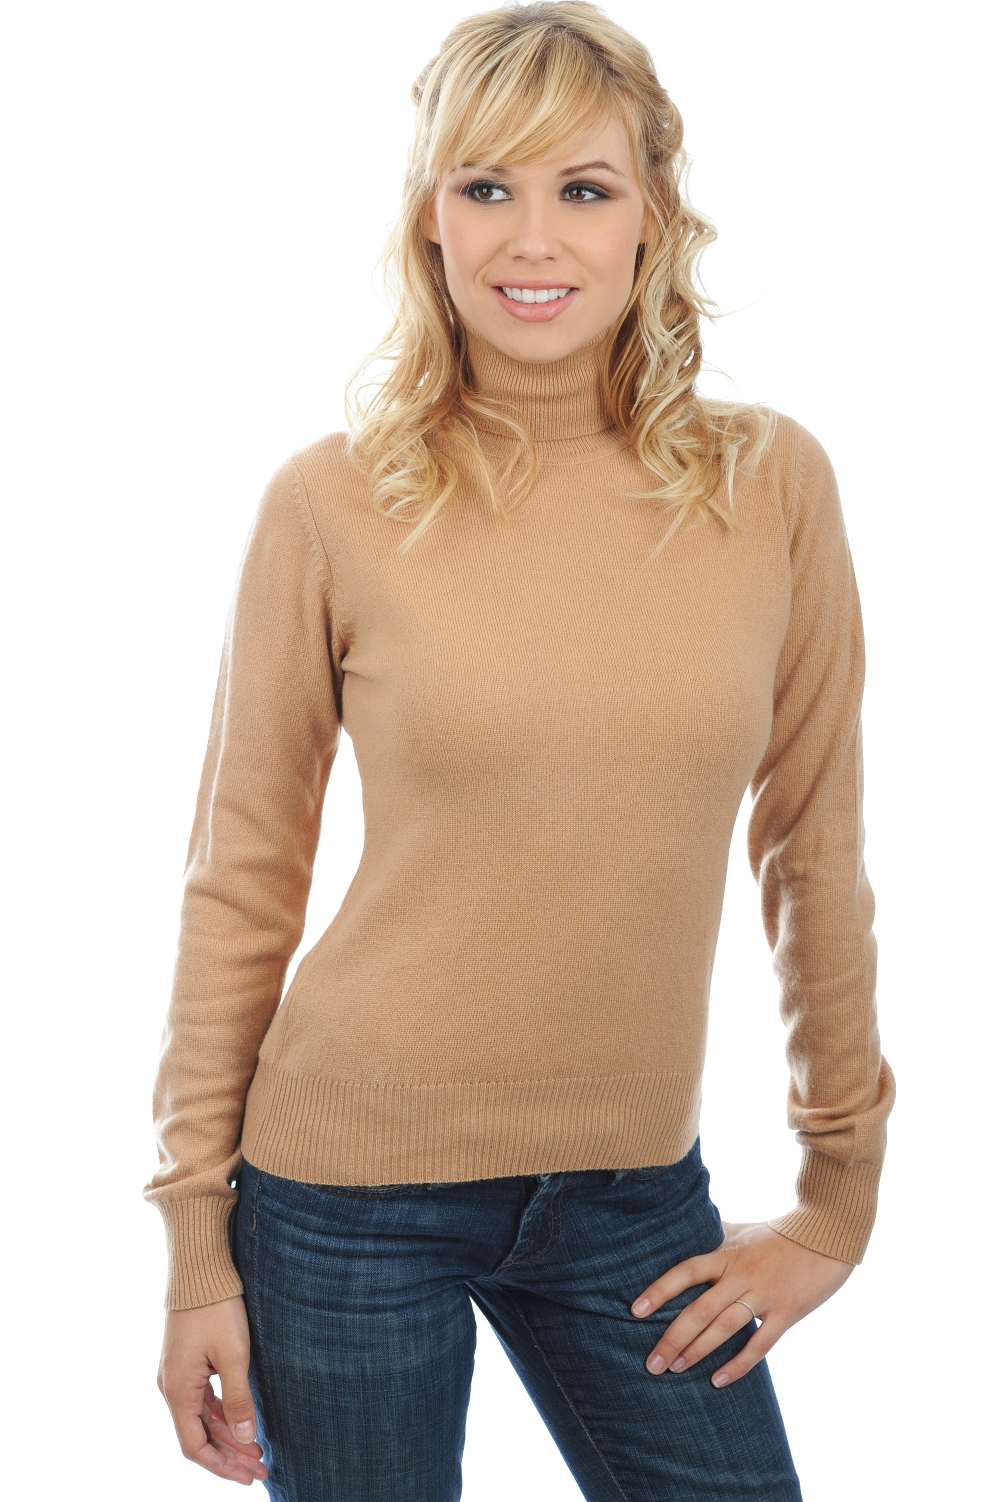 cachemire pull femme col roule lili camel 3xl